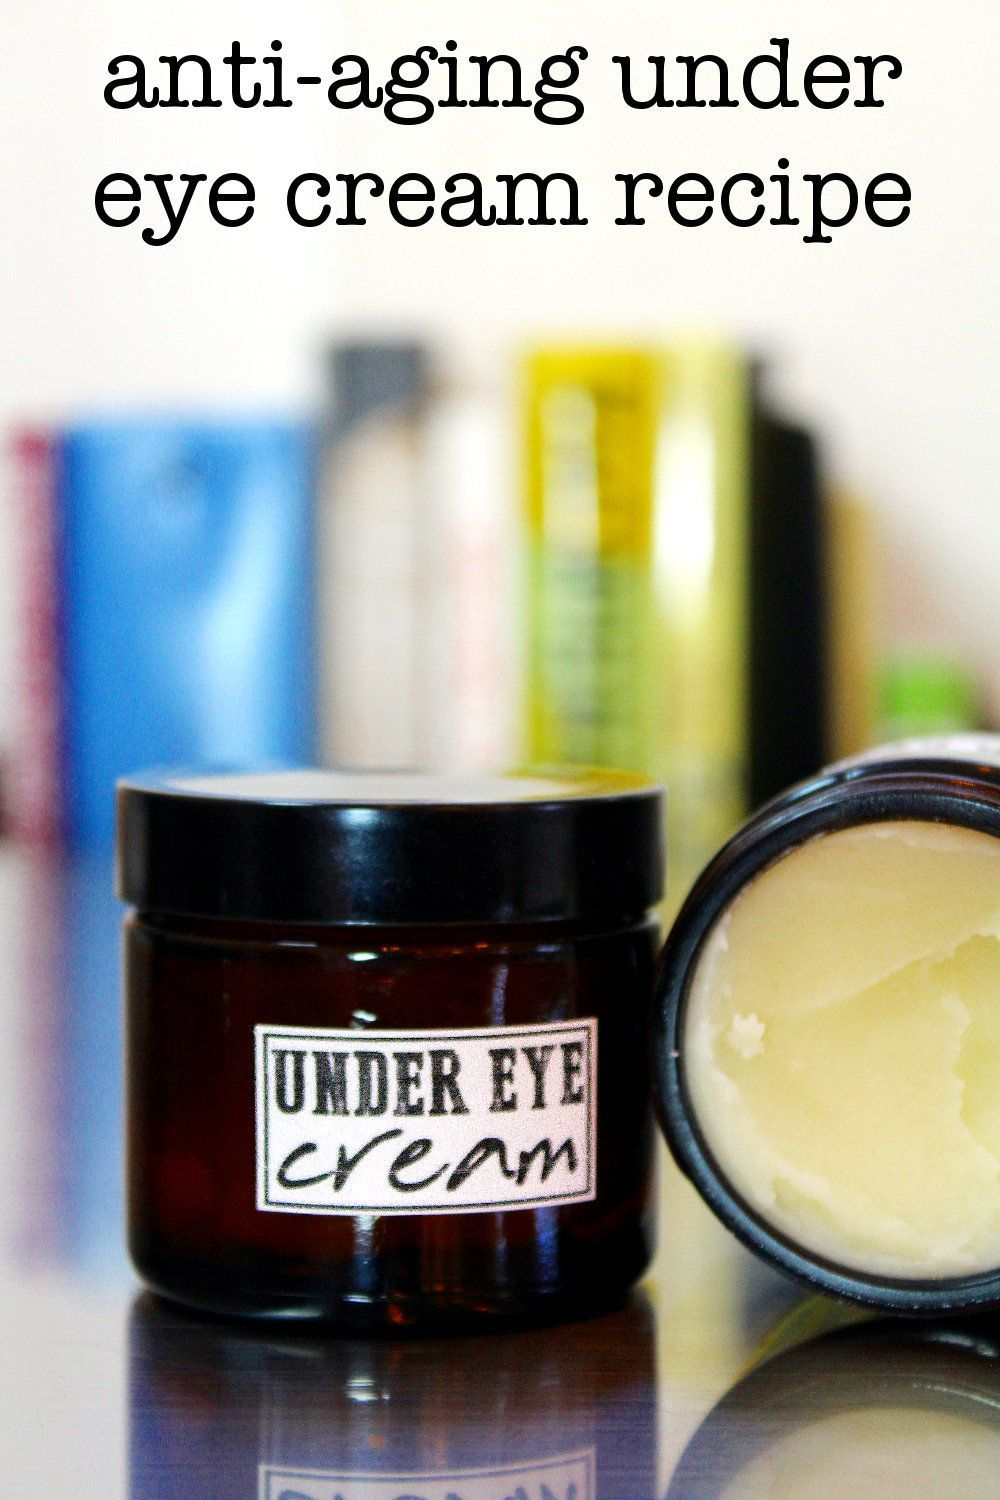 My diy antiaging under eye cream with hyaluronic acid hydrates skin